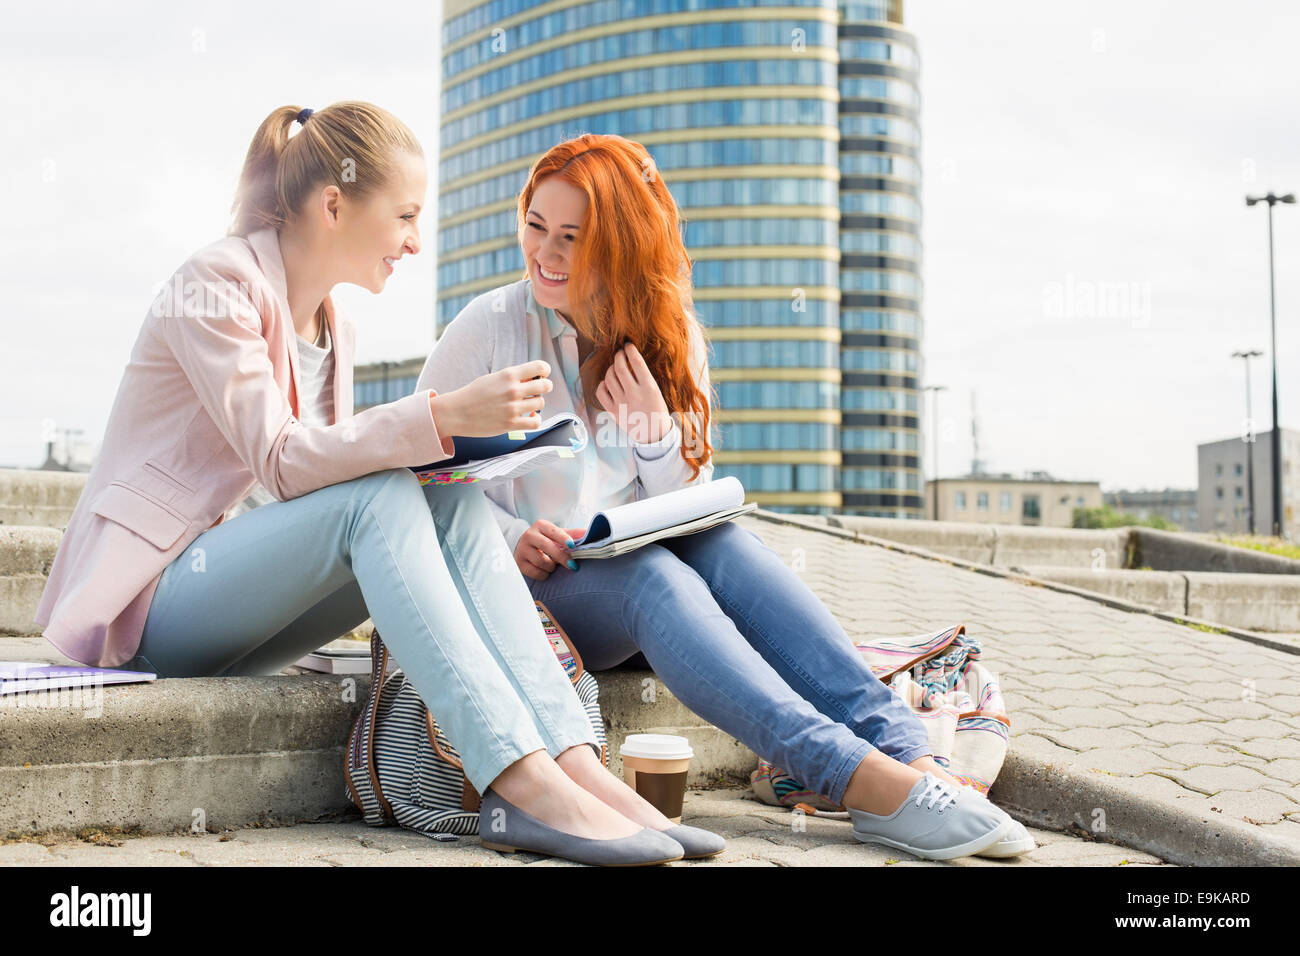 Full length of smiling female college students studying on steps against building - Stock Image